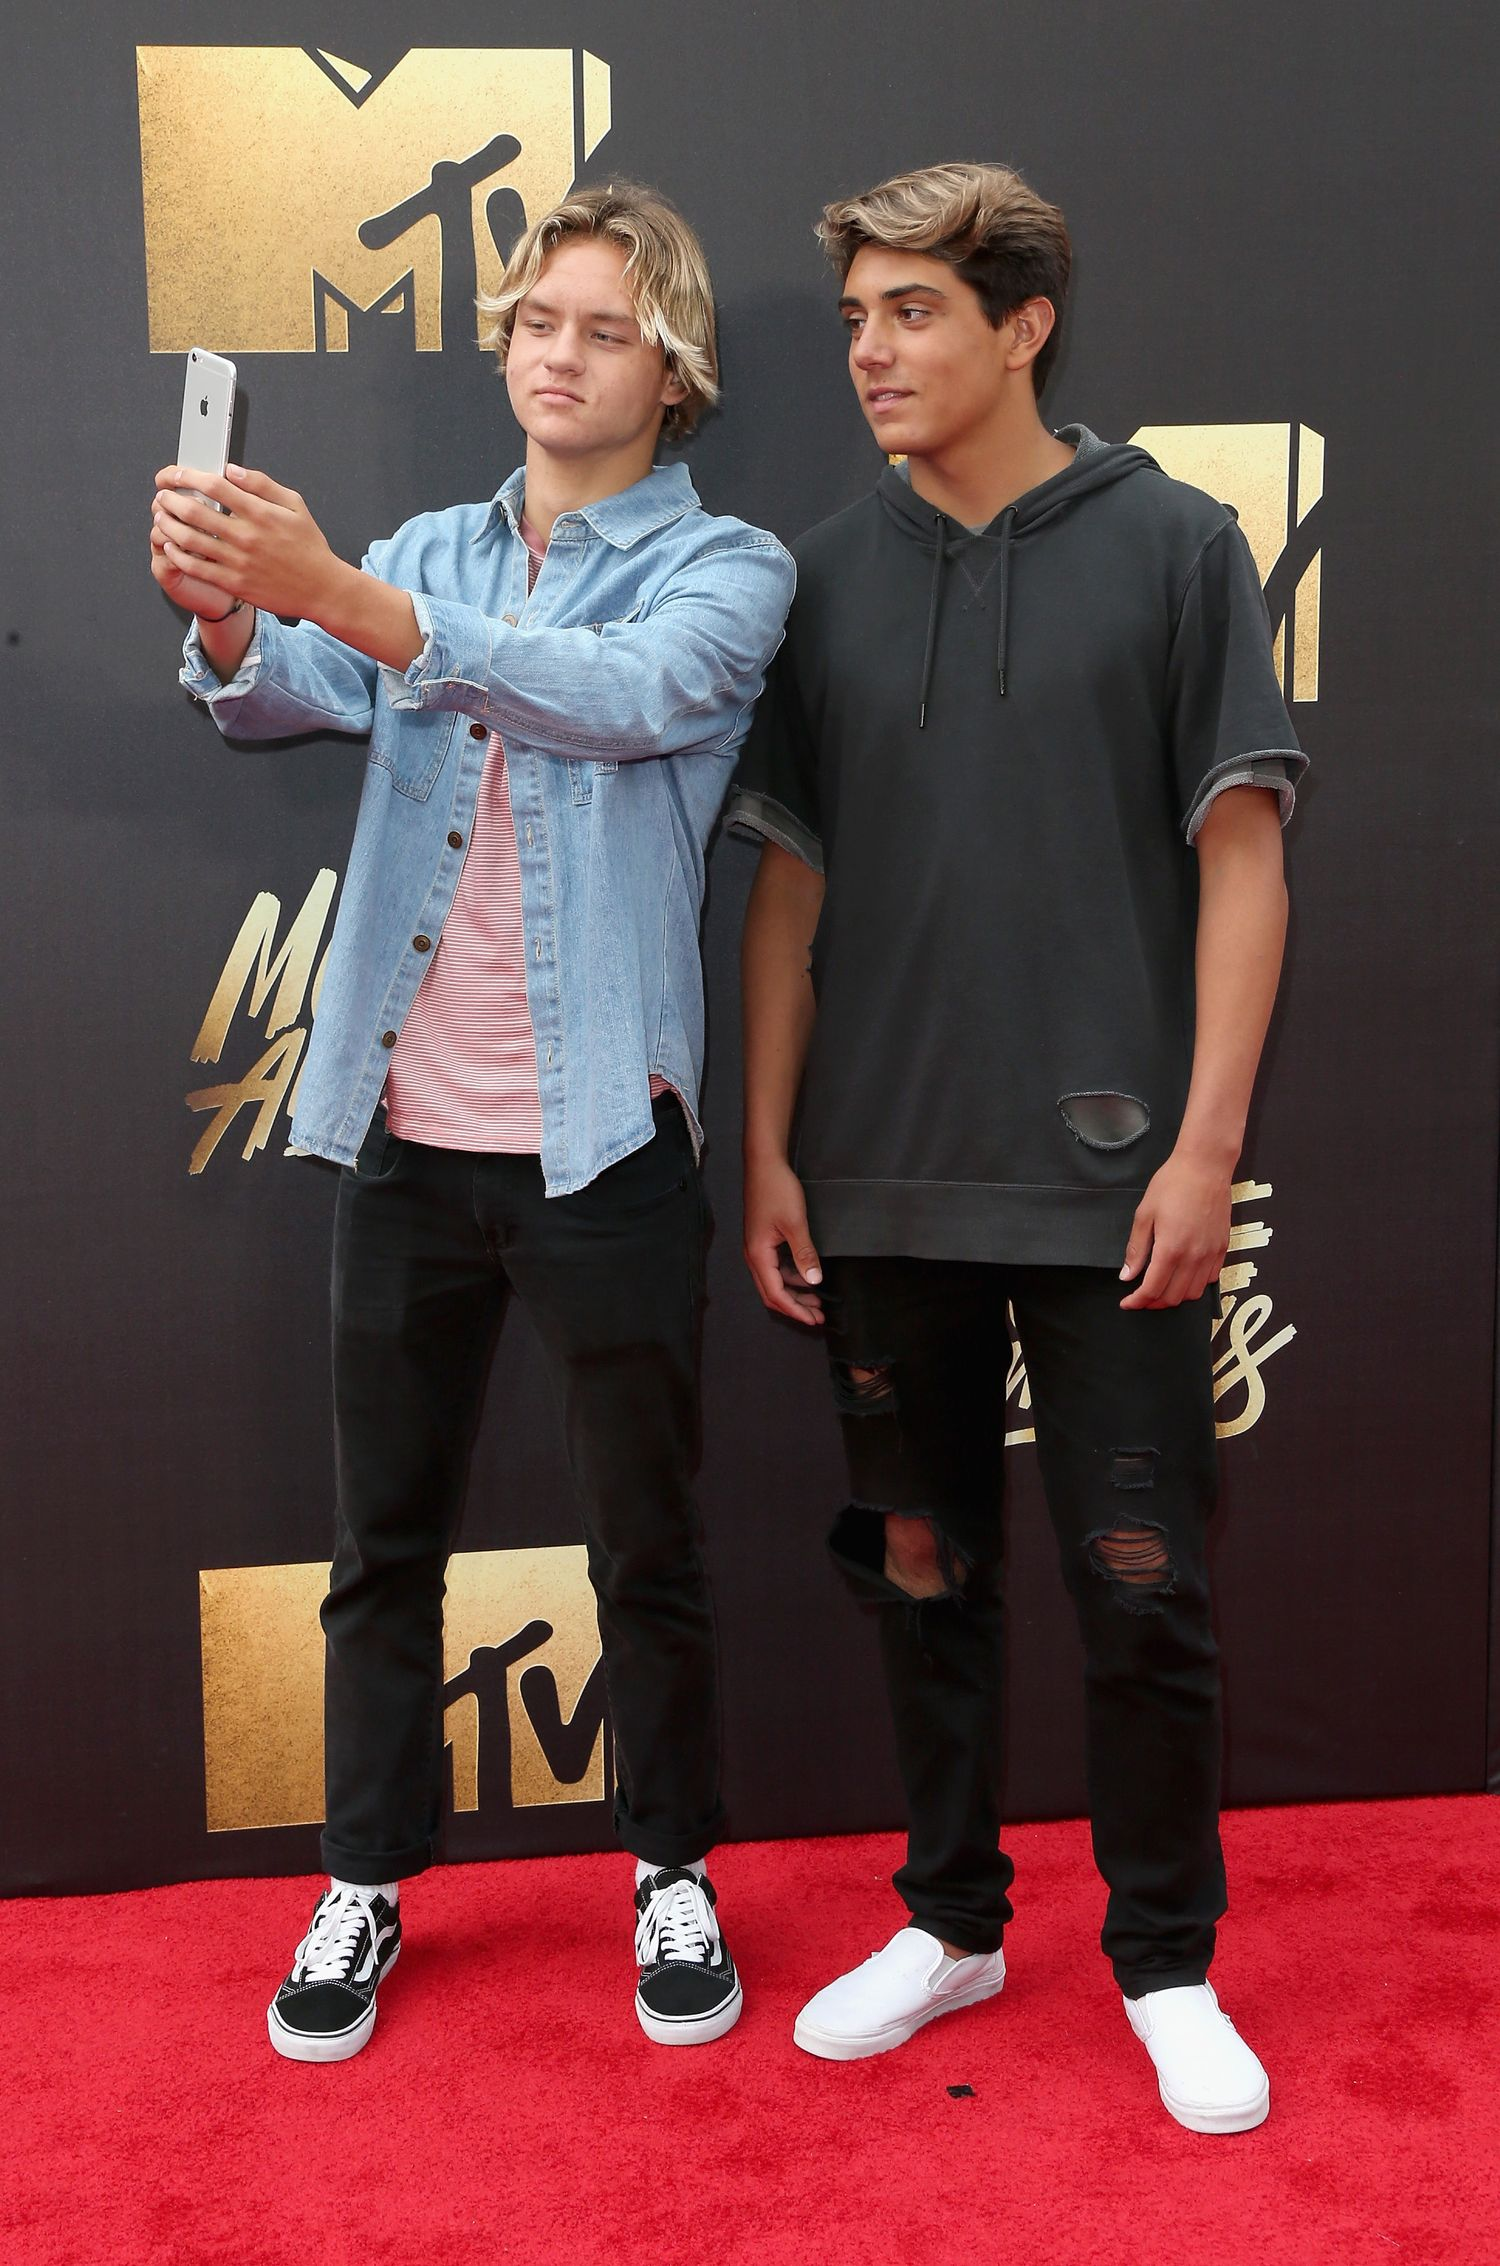 BURBANK, CALIFORNIA - APRIL 09: Internet personalities Joshua Holz (L) and Daniel Lara attend the 2016 MTV Movie Awards at Warner Bros. Studios on April 9, 2016 in Burbank, California. MTV Movie Awards airs April 10, 2016 at 8pm ET/PT. (Photo by Frederick M. Brown/Getty Images)